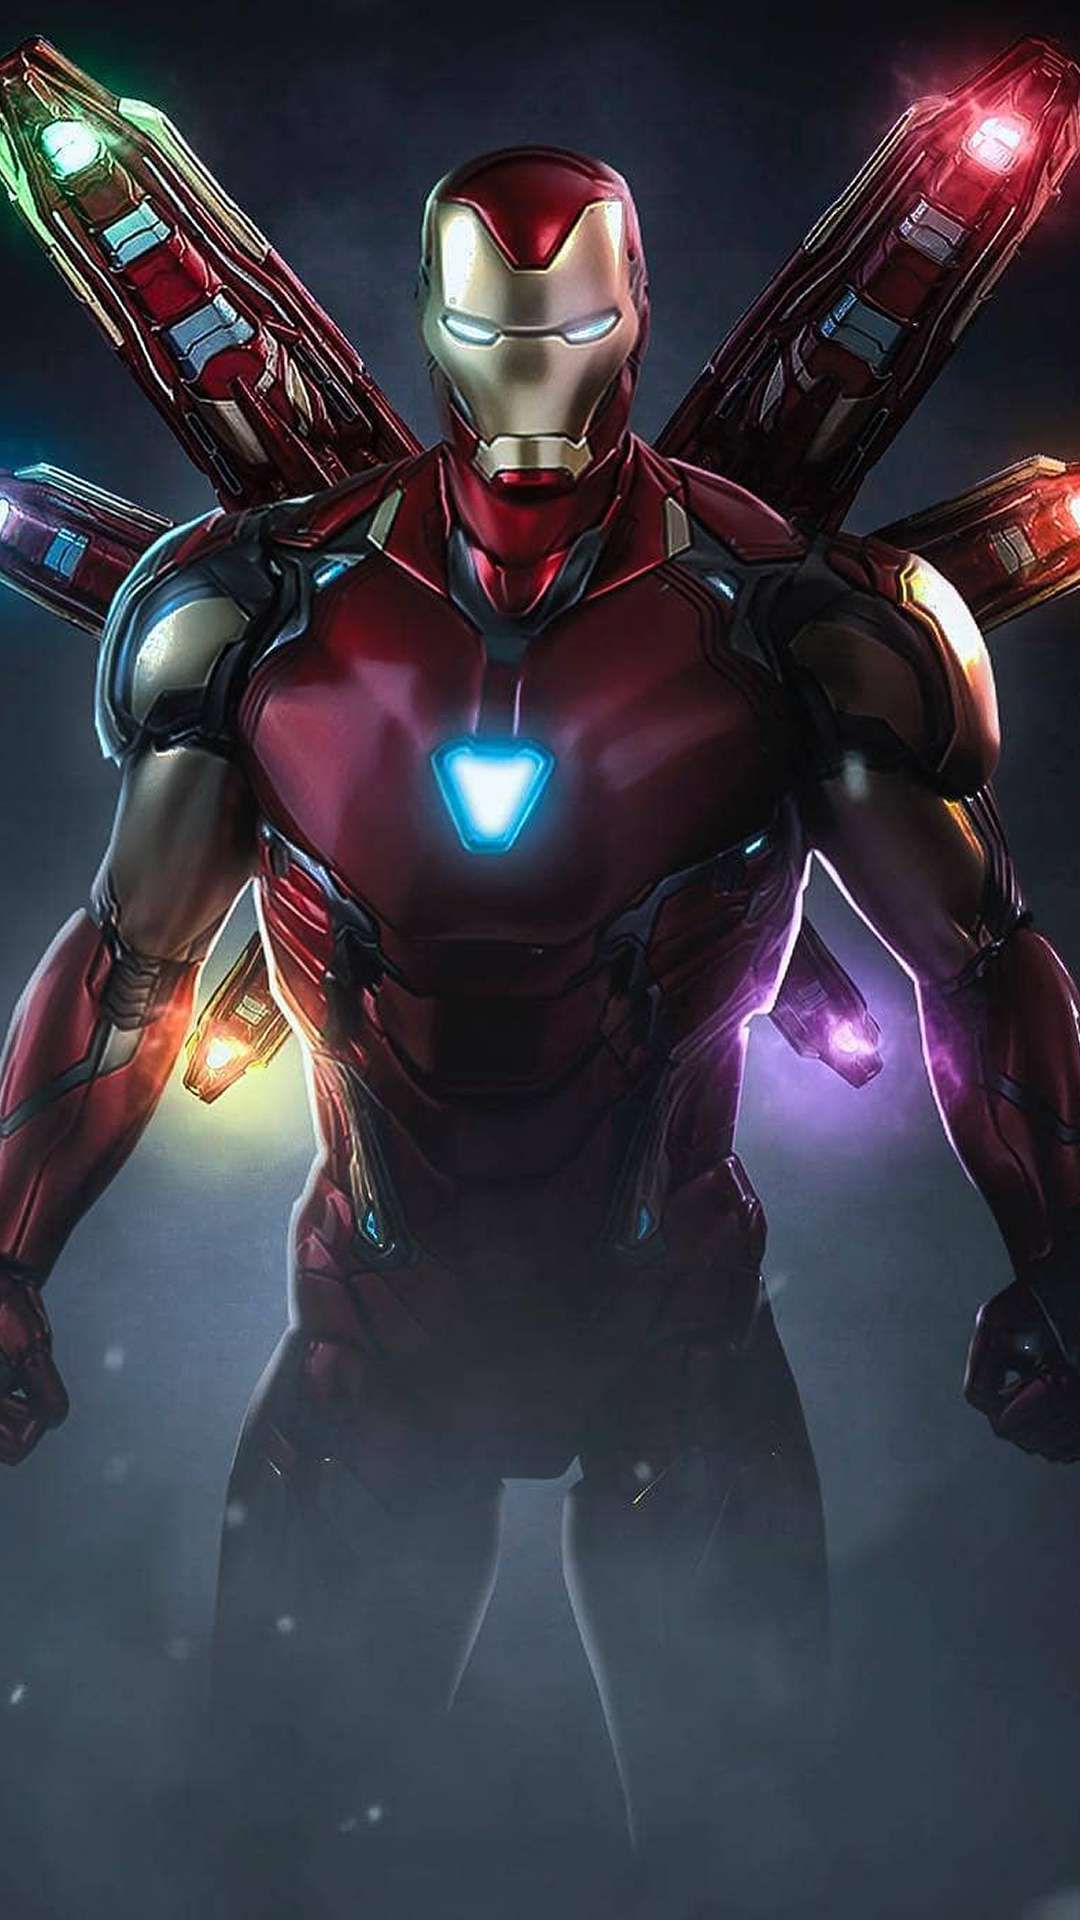 Iron Man Mark 85 Infinity Stone Armor Iphone Wallpaper Iron Man Avengers Marvel Iron Man Marvel Comics Wallpaper